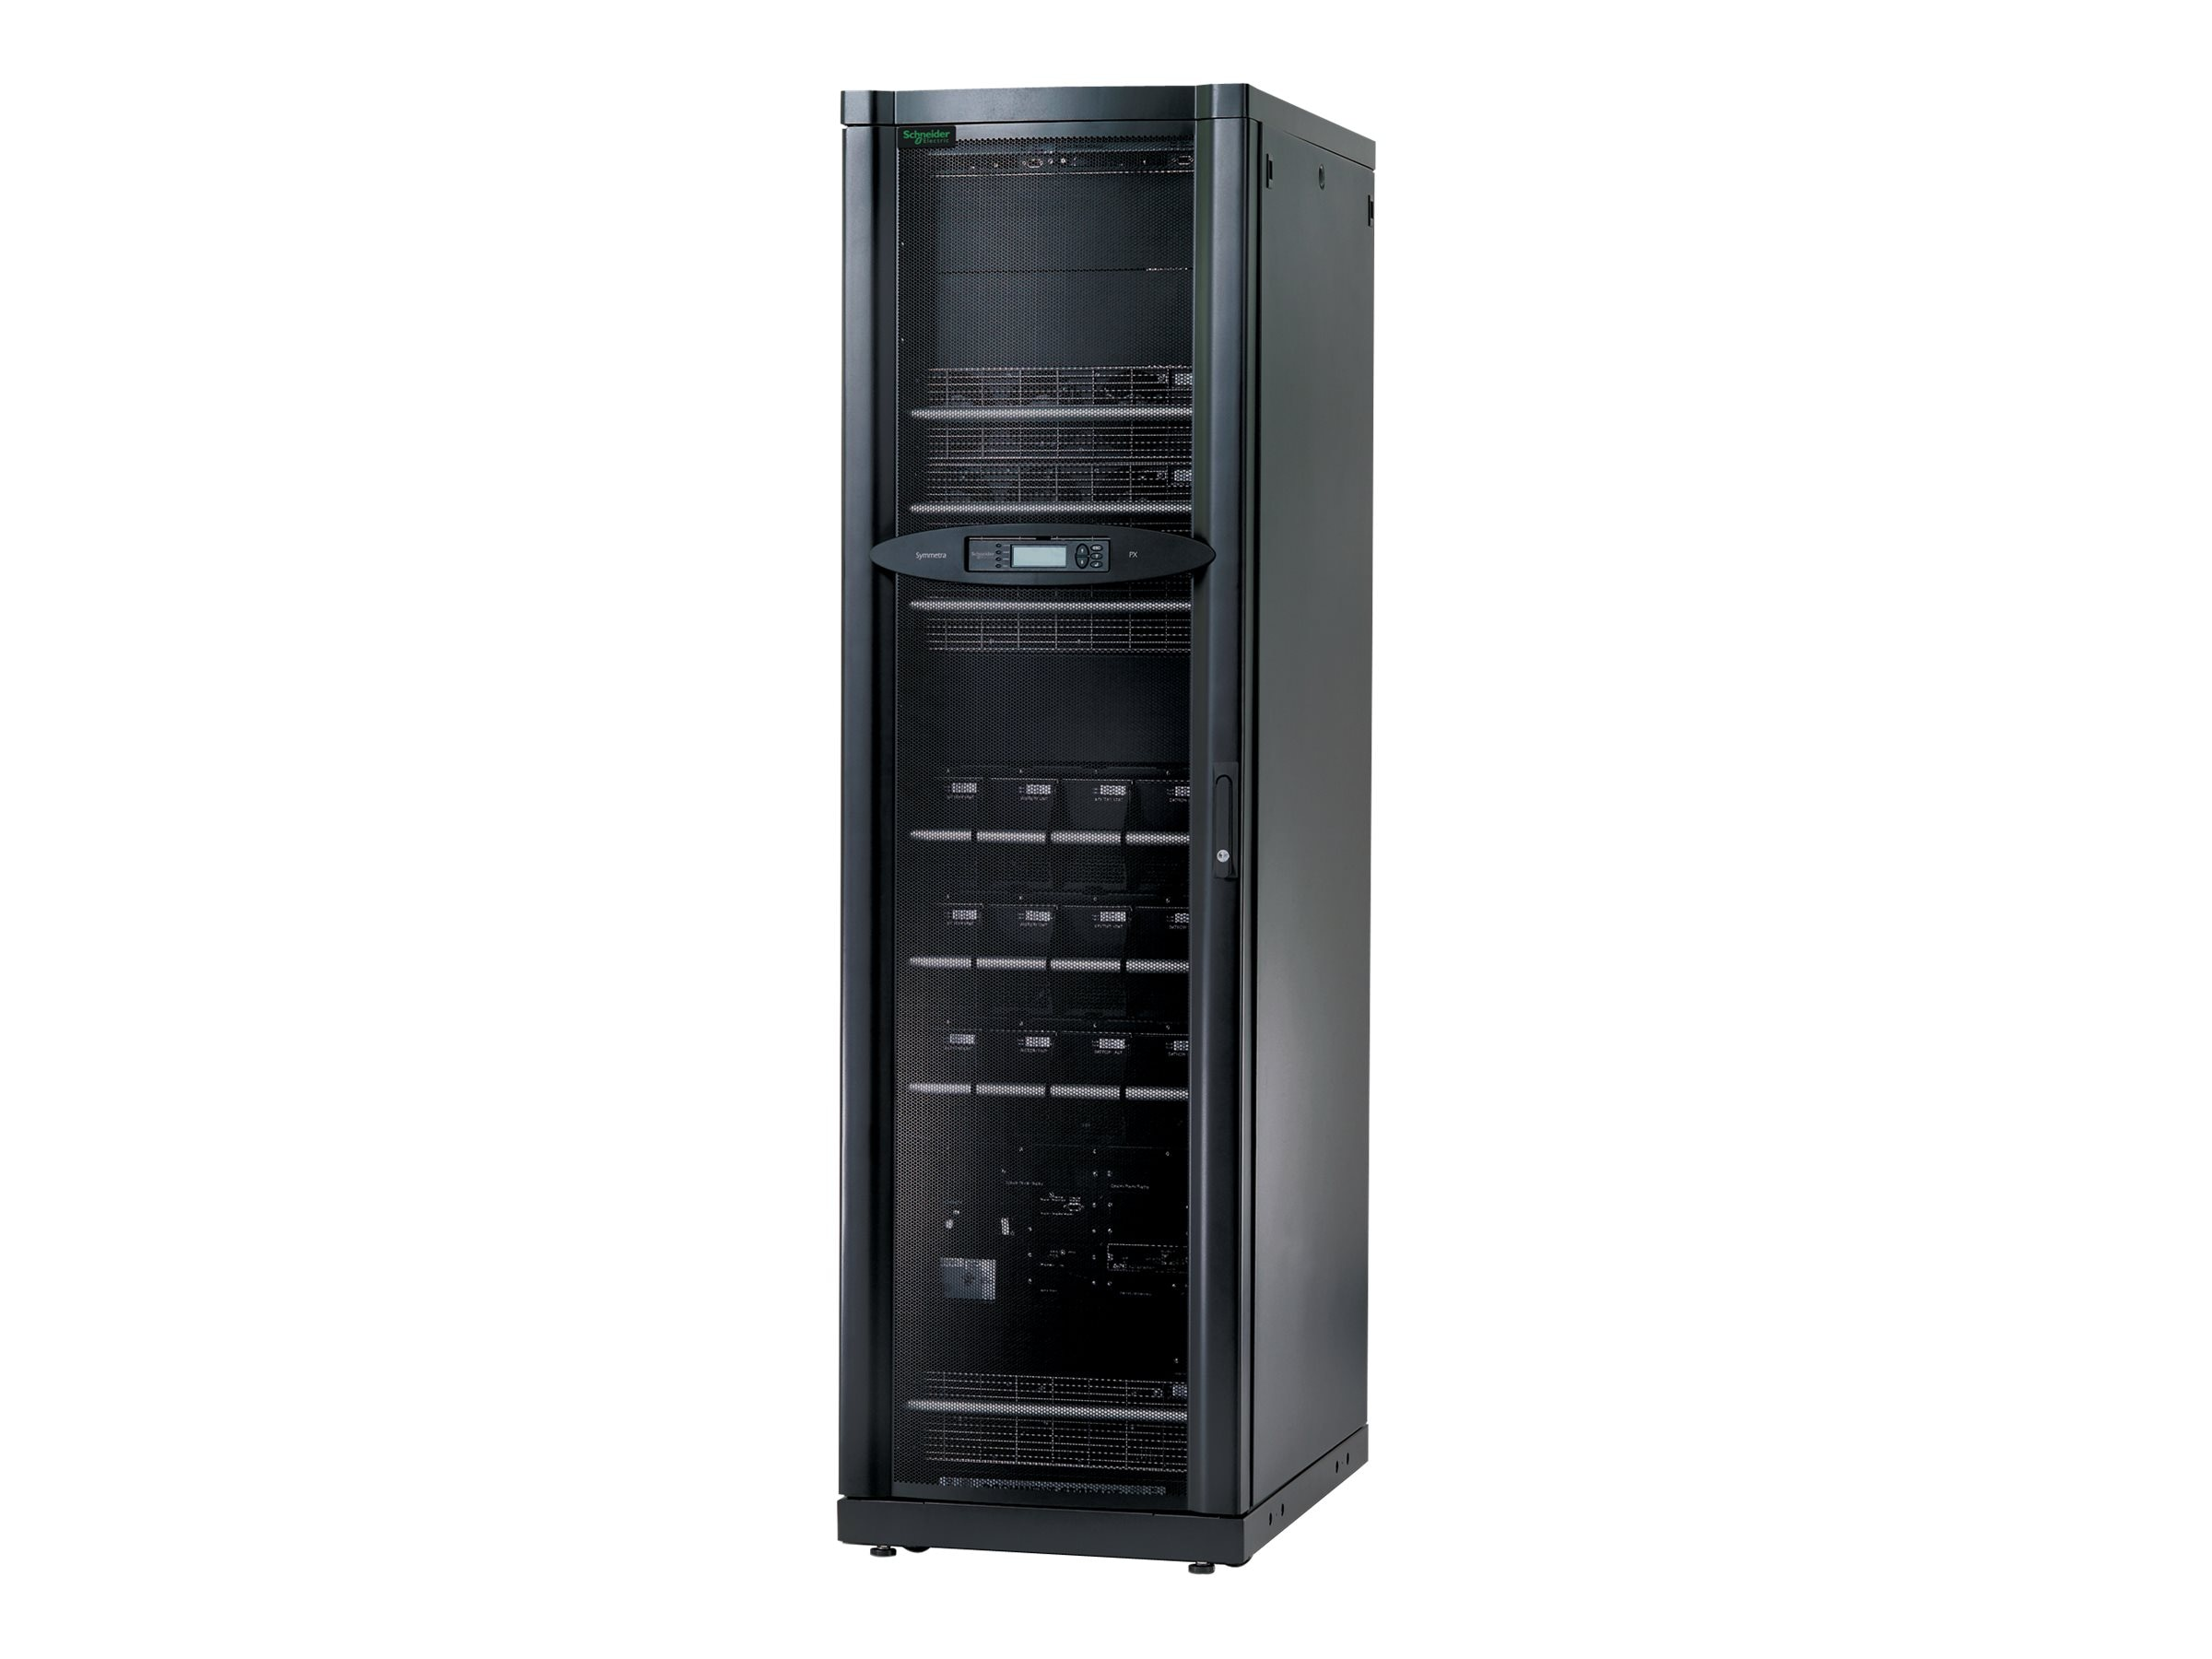 APC Symmetra PX 30kW Scalable to 40kW N+1, 208v, SY30K40F, 11722800, Battery Backup/UPS